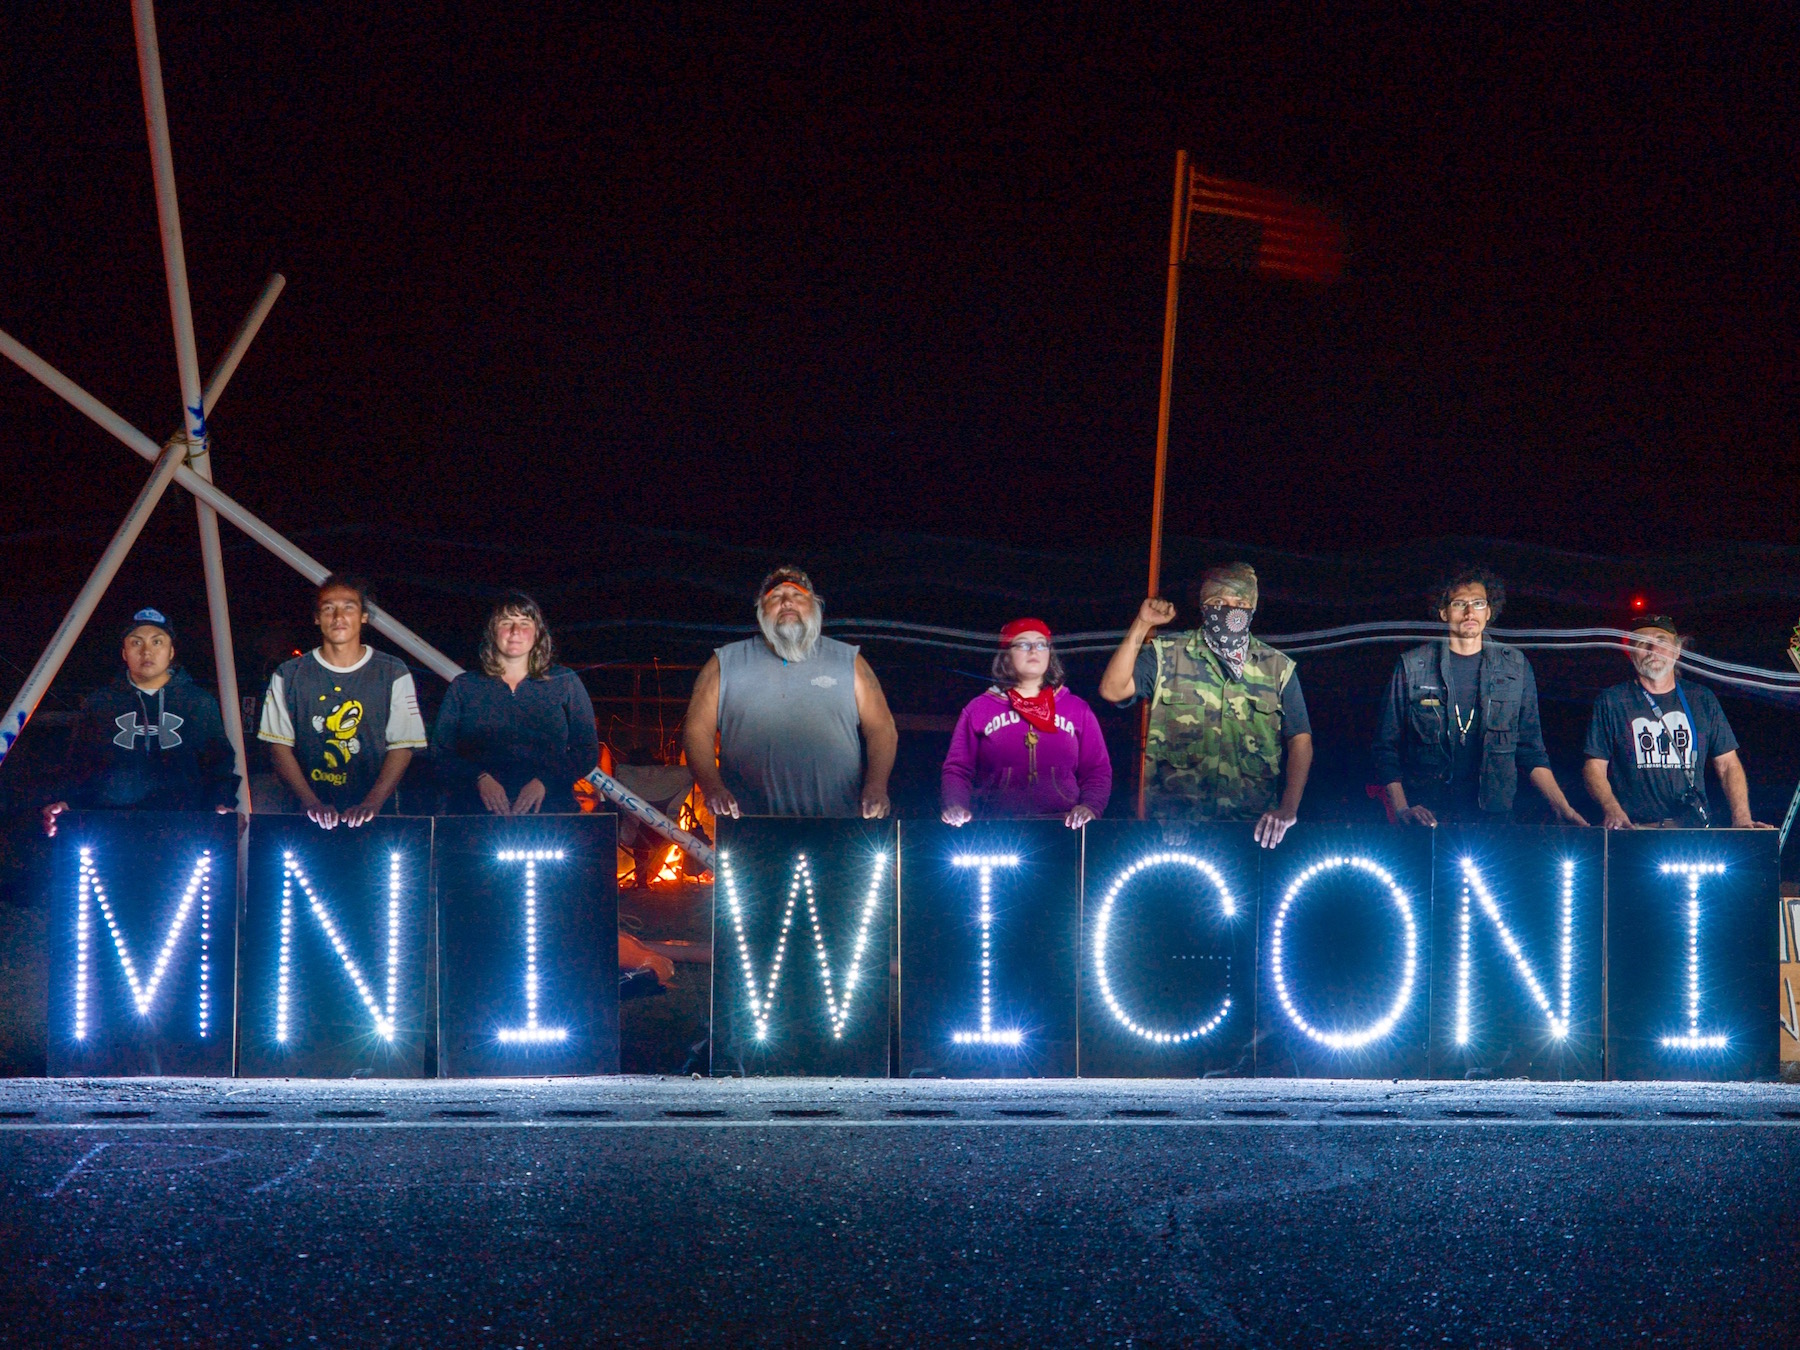 Jenni Monet: What the Trump victory means for Standing Rock